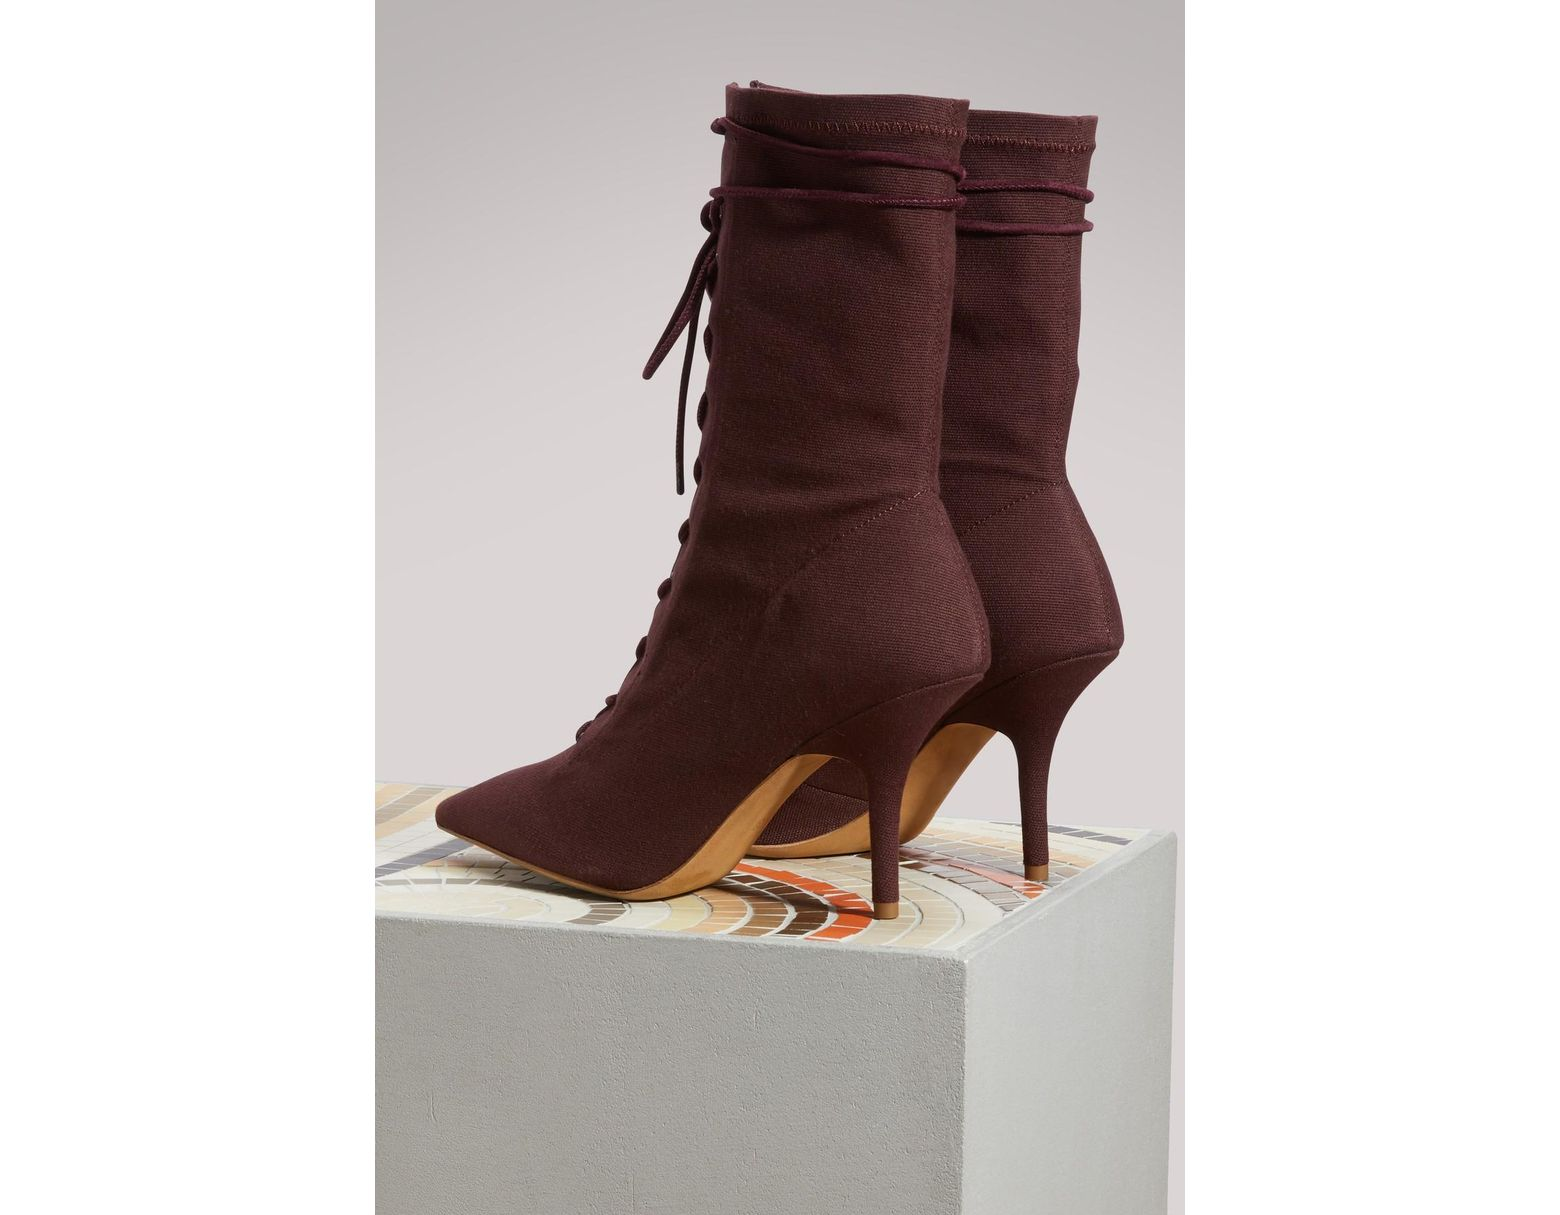 325a304f5 Lyst - Yeezy Canvas Lace Up Boots in Brown